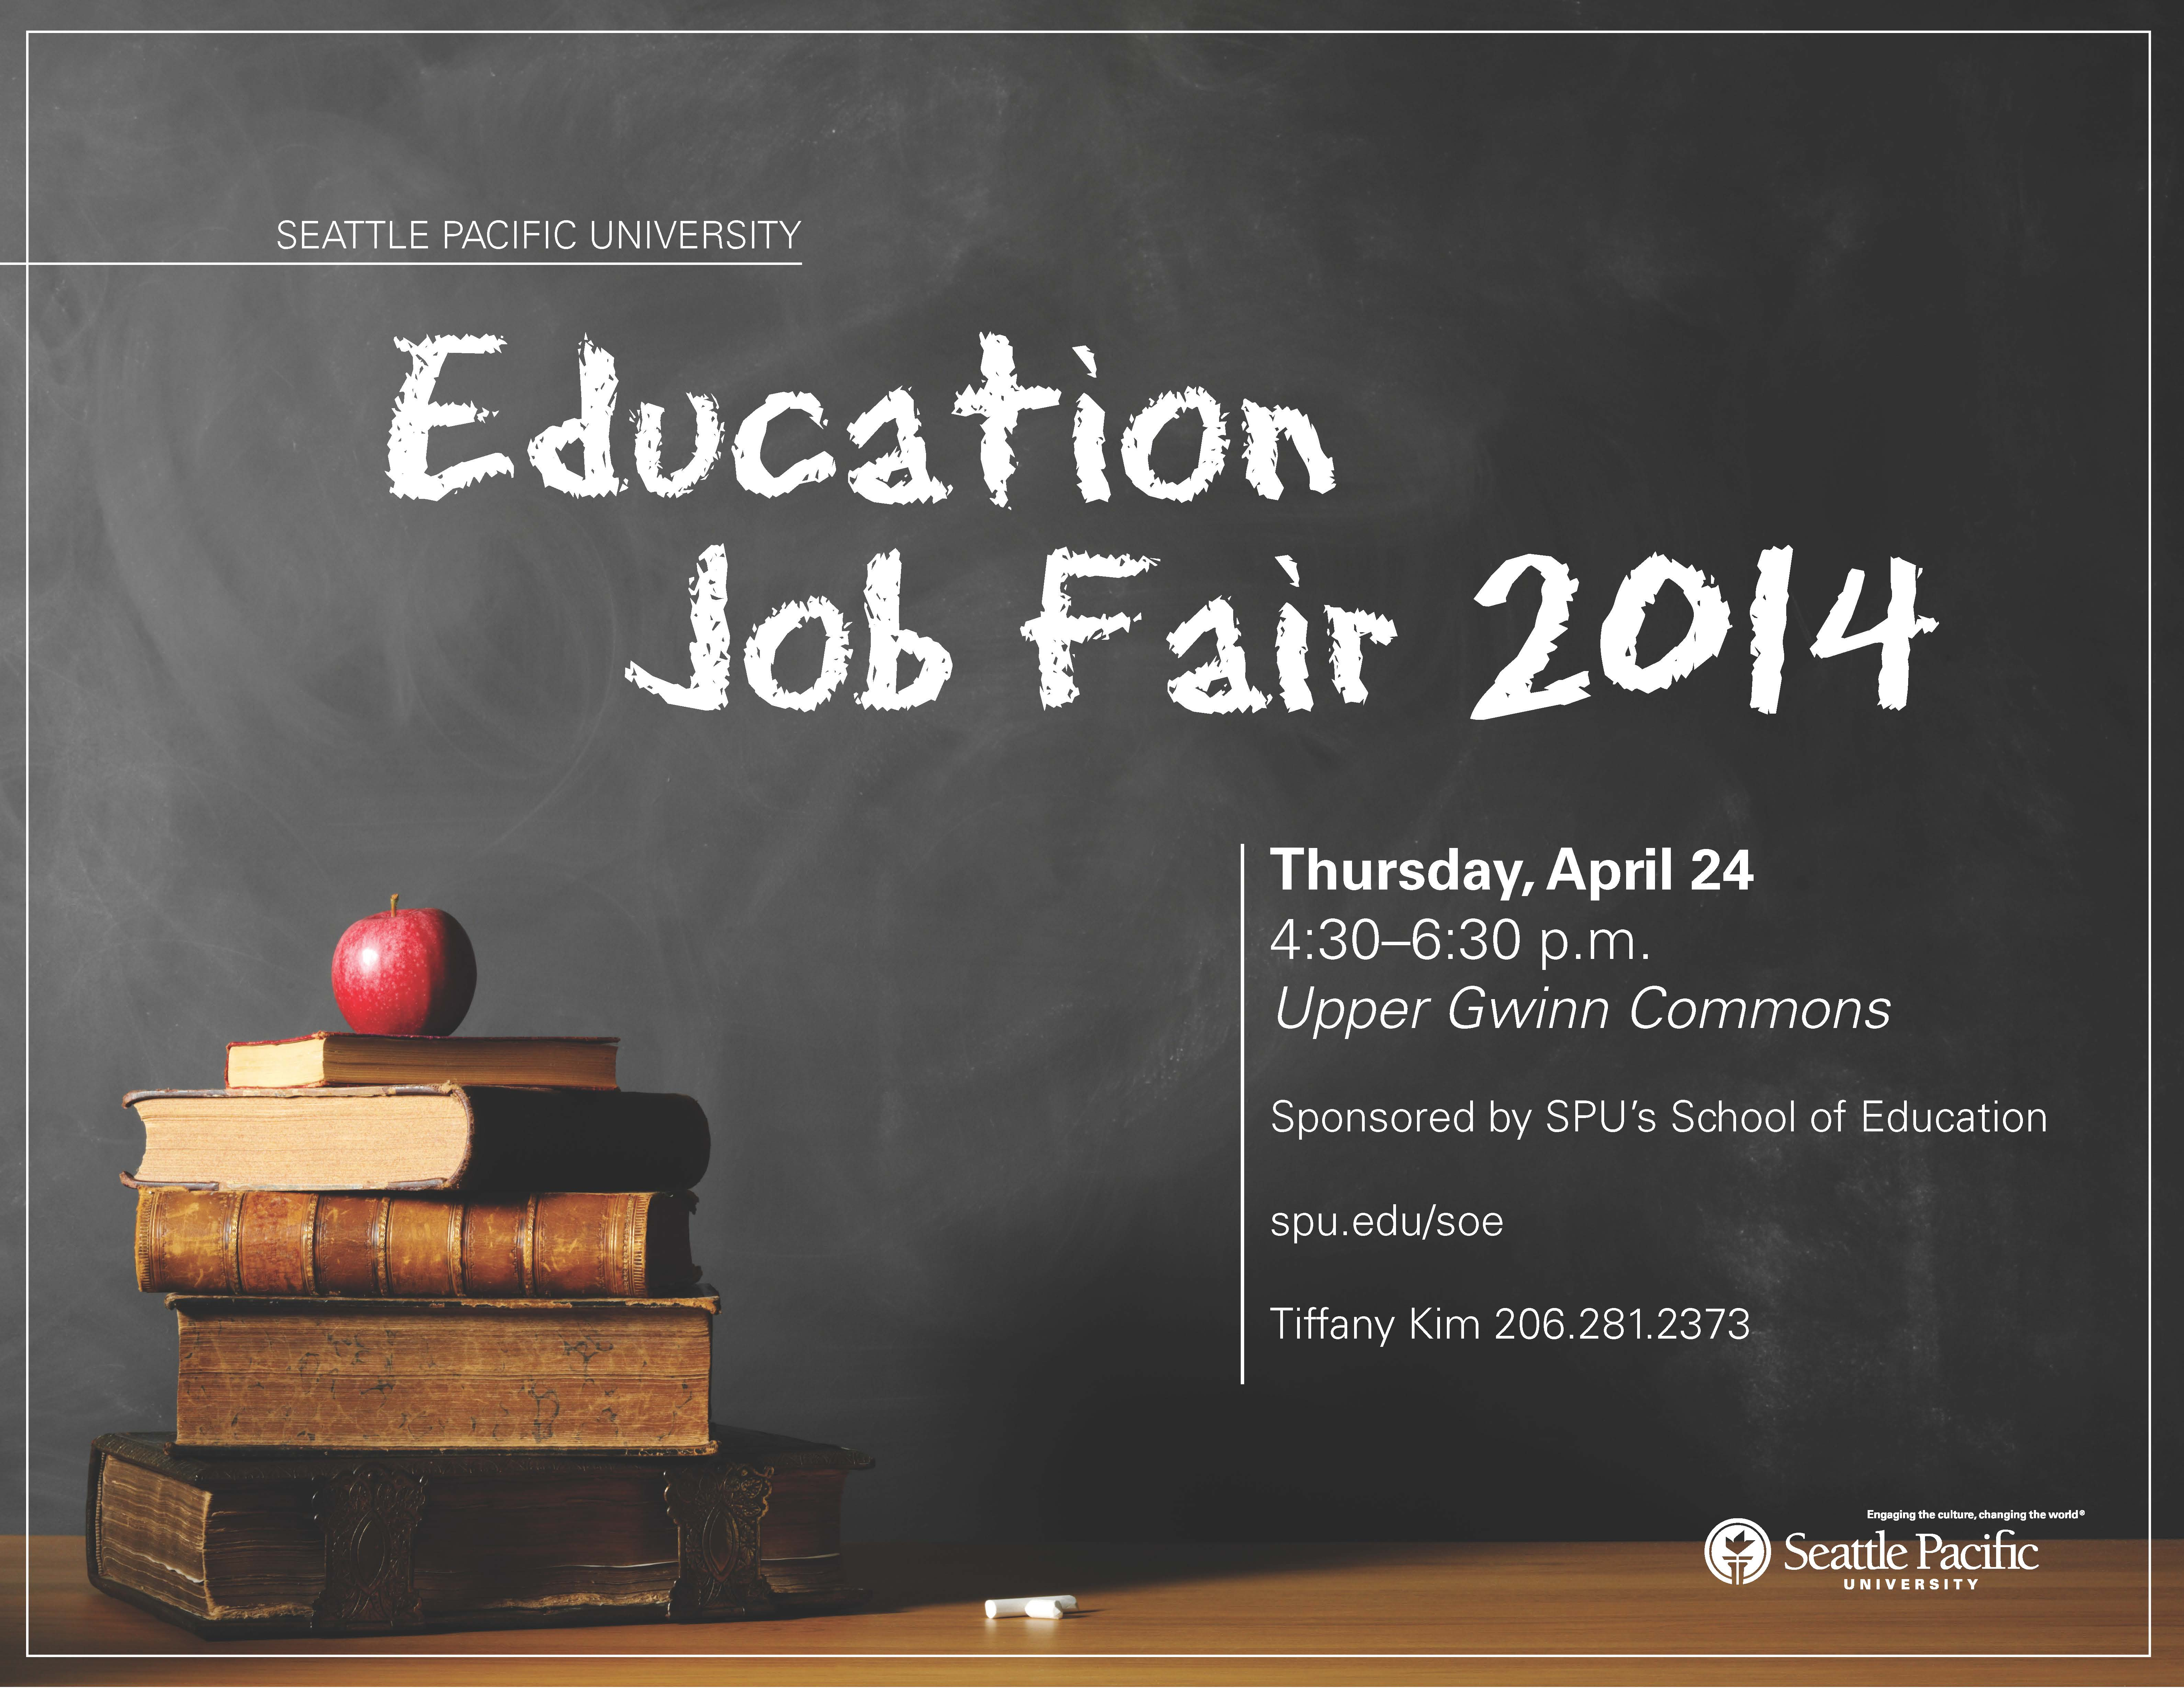 Education-Job-Fair-2014